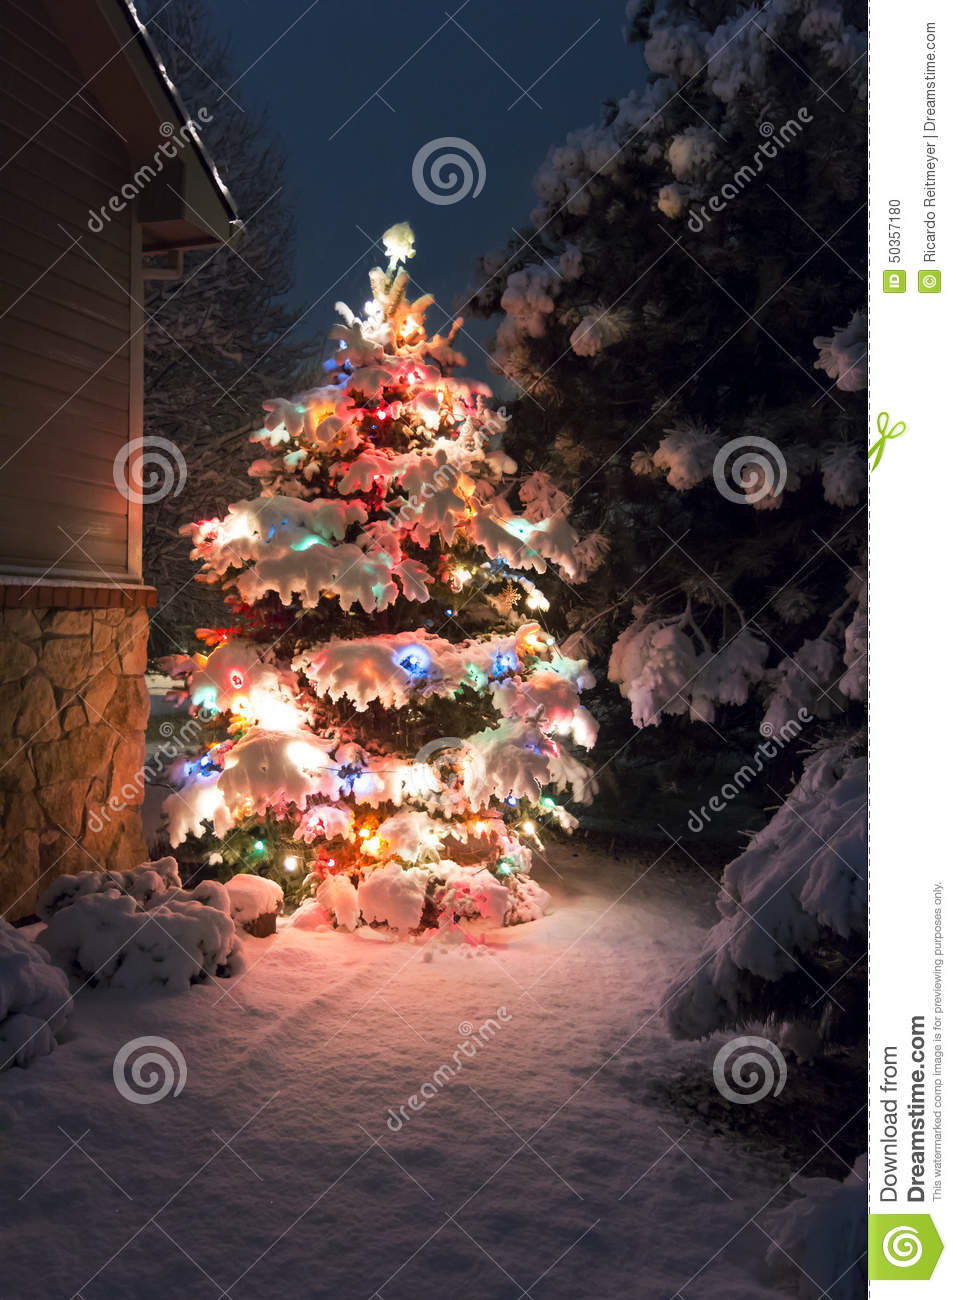 This Snow Covered Christmas Tree stands out brightly against the dark blue tones of late evening light in this winter holiday sce